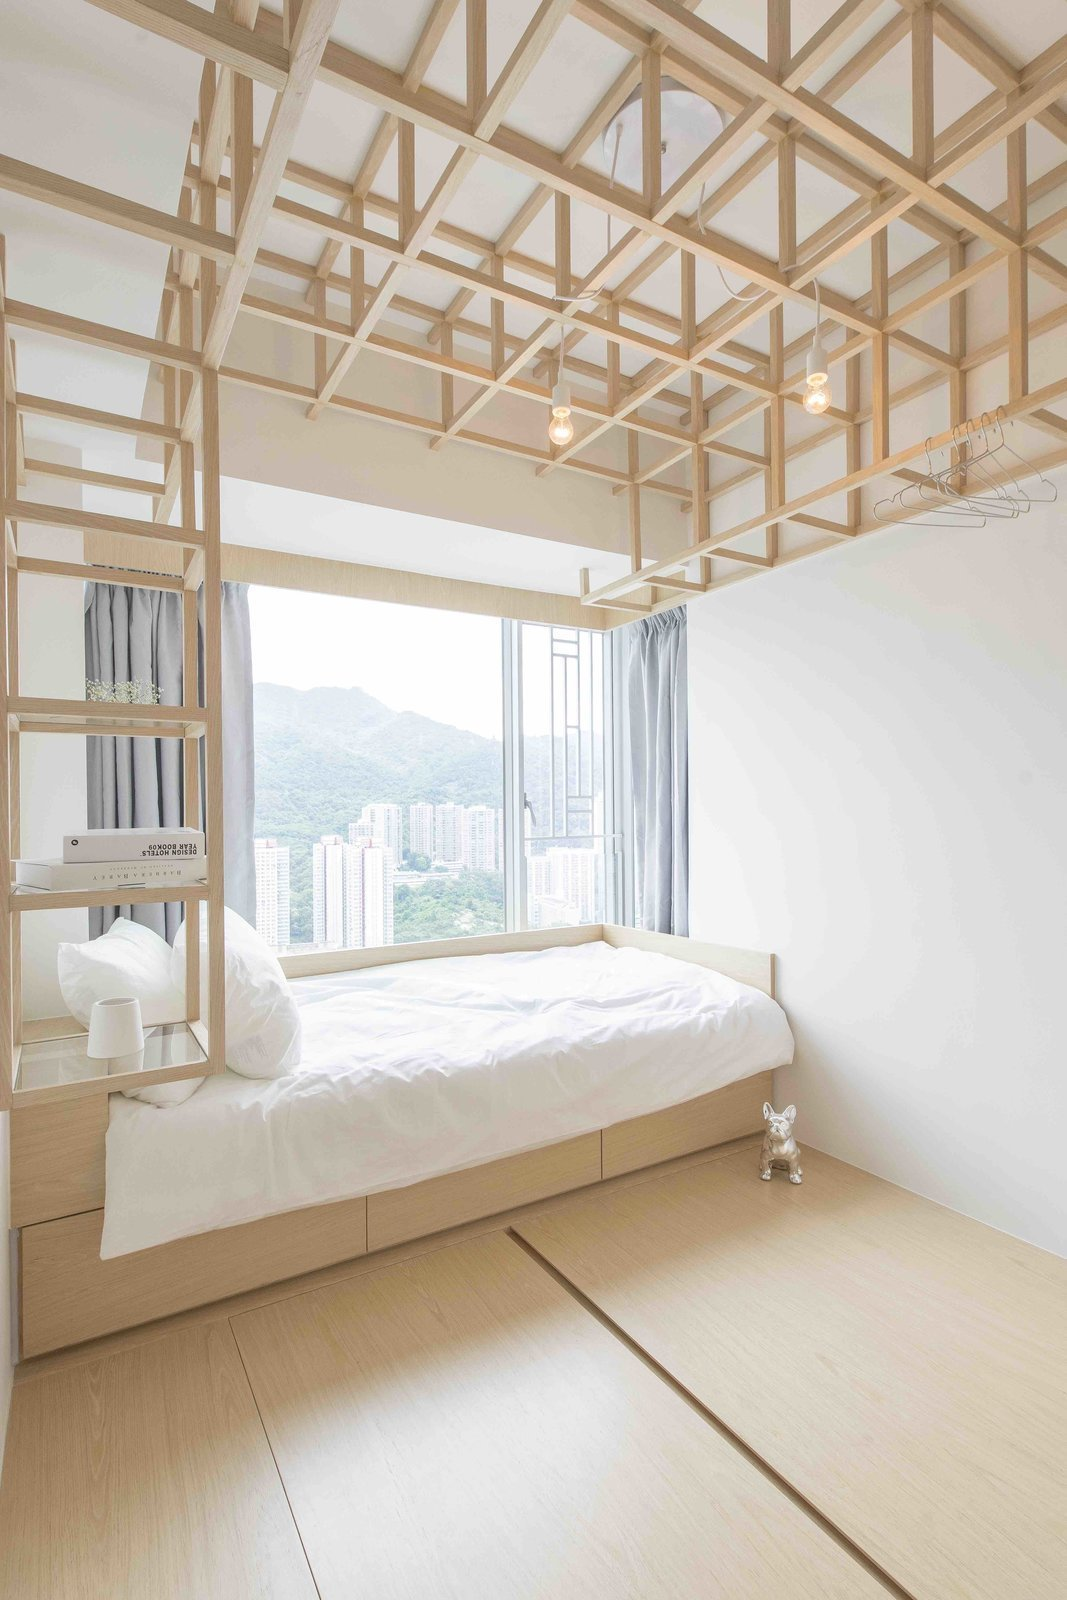 Photo 11 of 21 in 10 Zen Homes That Champion Japanese Design - Dwell